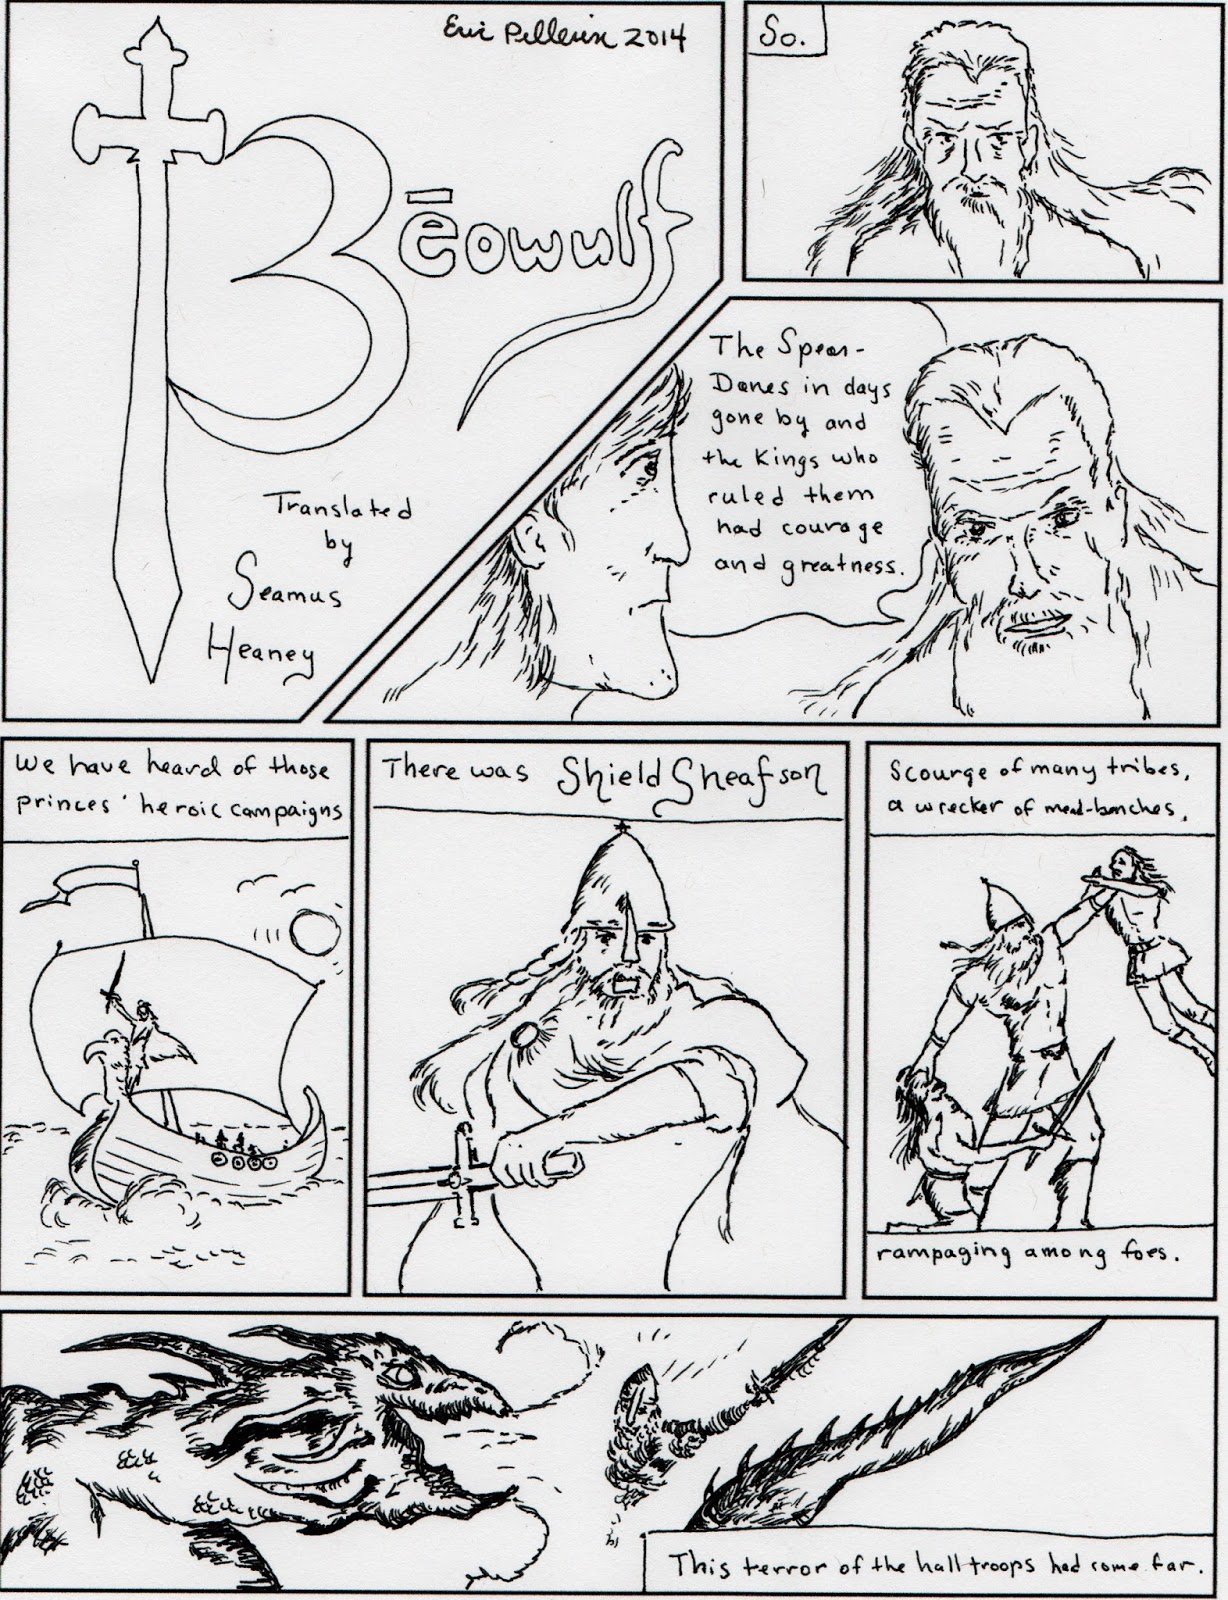 survey of british literature block 4 due tuesday 8th graphic novel essay beowulf translated by seamus heaney